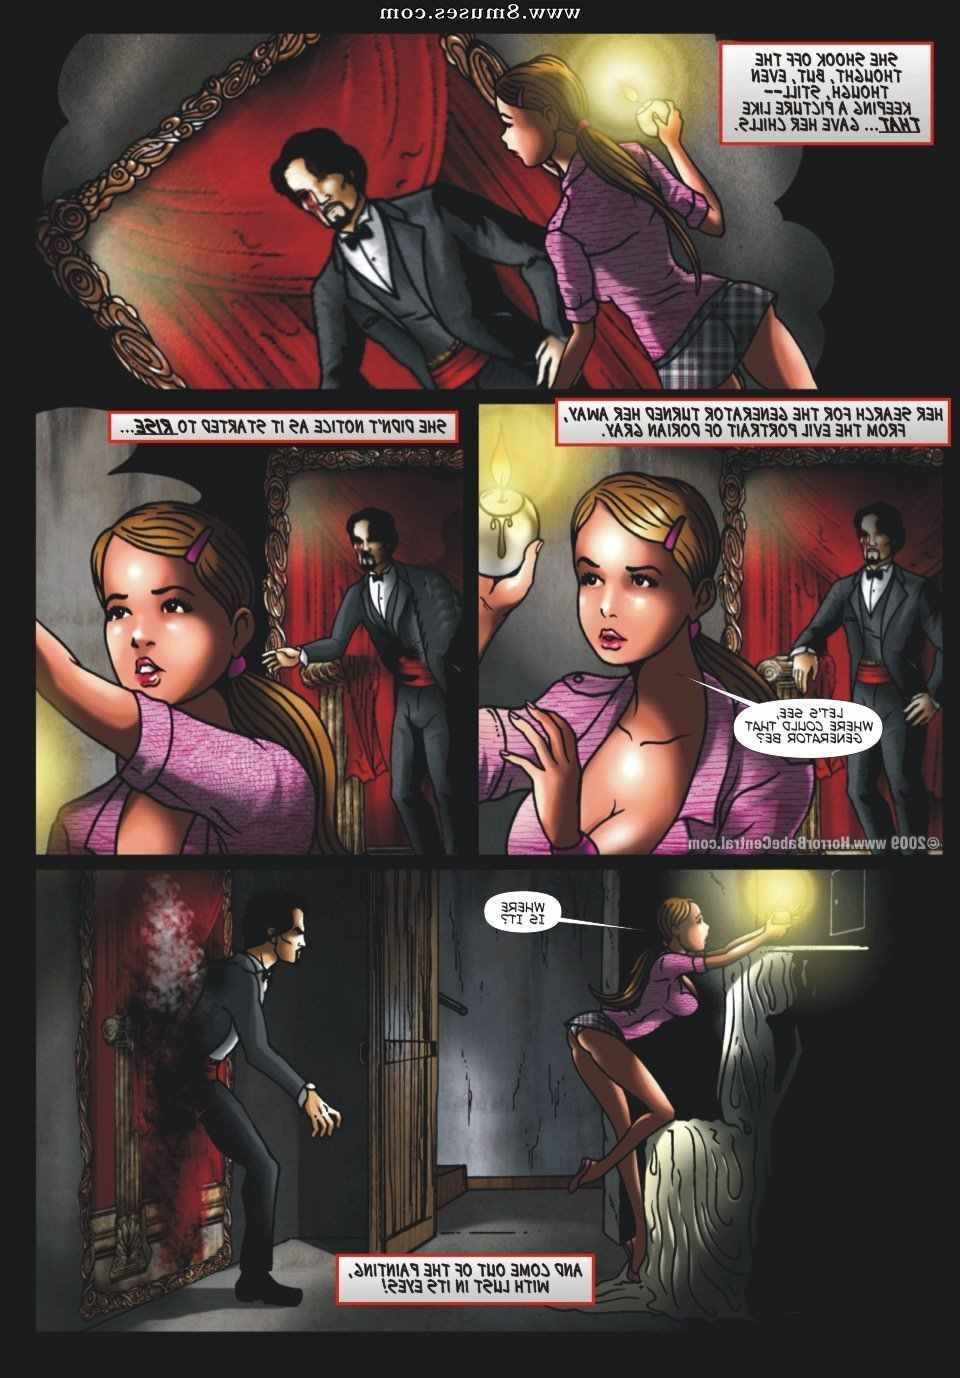 Central-Comics/Horror-Babe-Central/Fable-of-Fright Fable_of_Fright__8muses_-_Sex_and_Porn_Comics_120.jpg